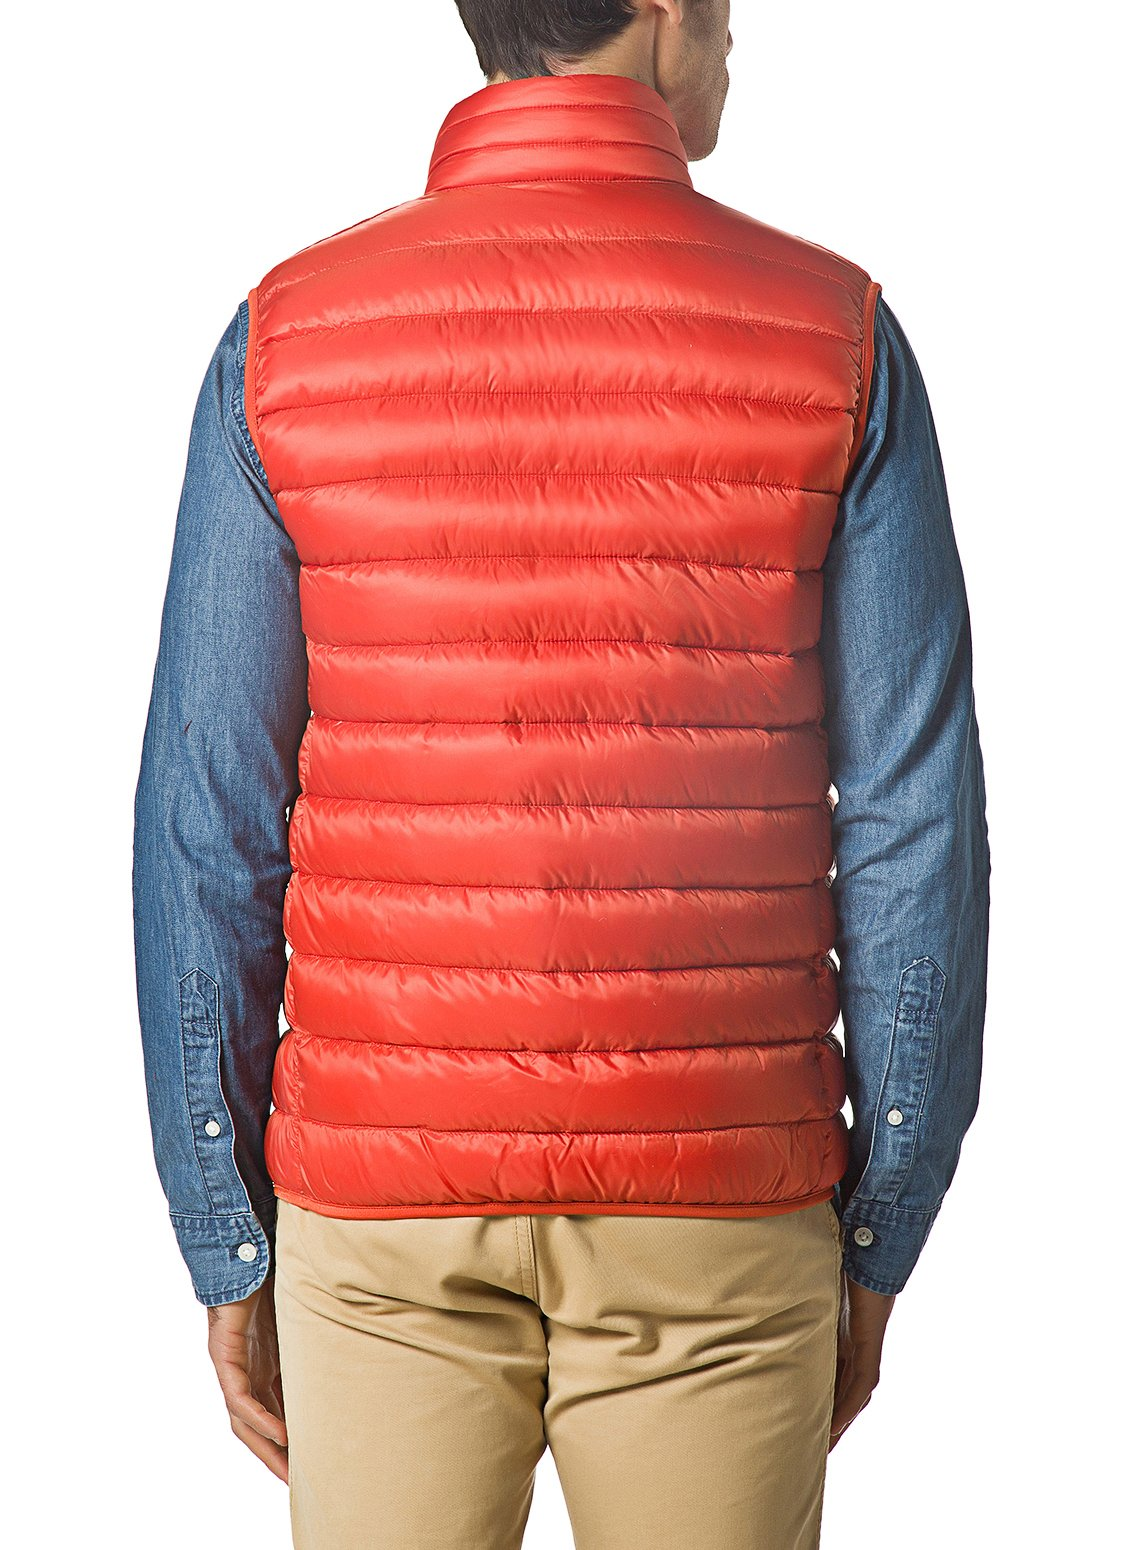 XPOSURZONE Men Packable Lightweight Down Vest Outdoor Puffer Vest Blazing Orange M by XPOSURZONE